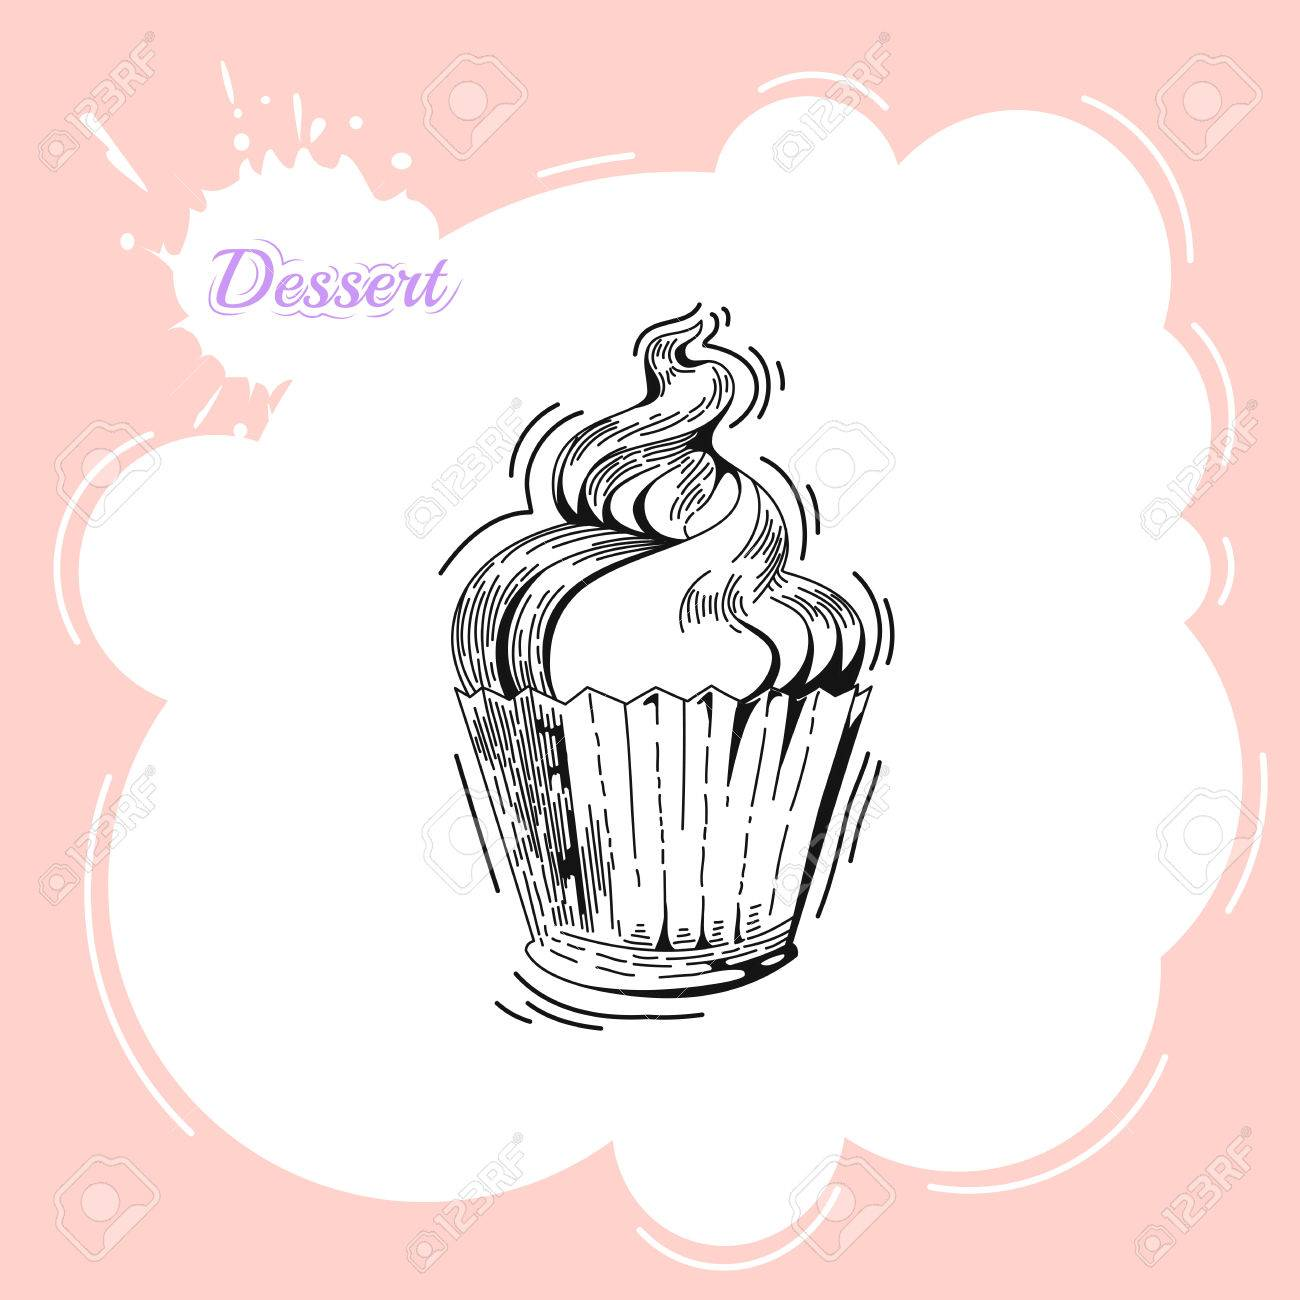 Cupcakes  Poster in vintage style  Bakery advertisement design